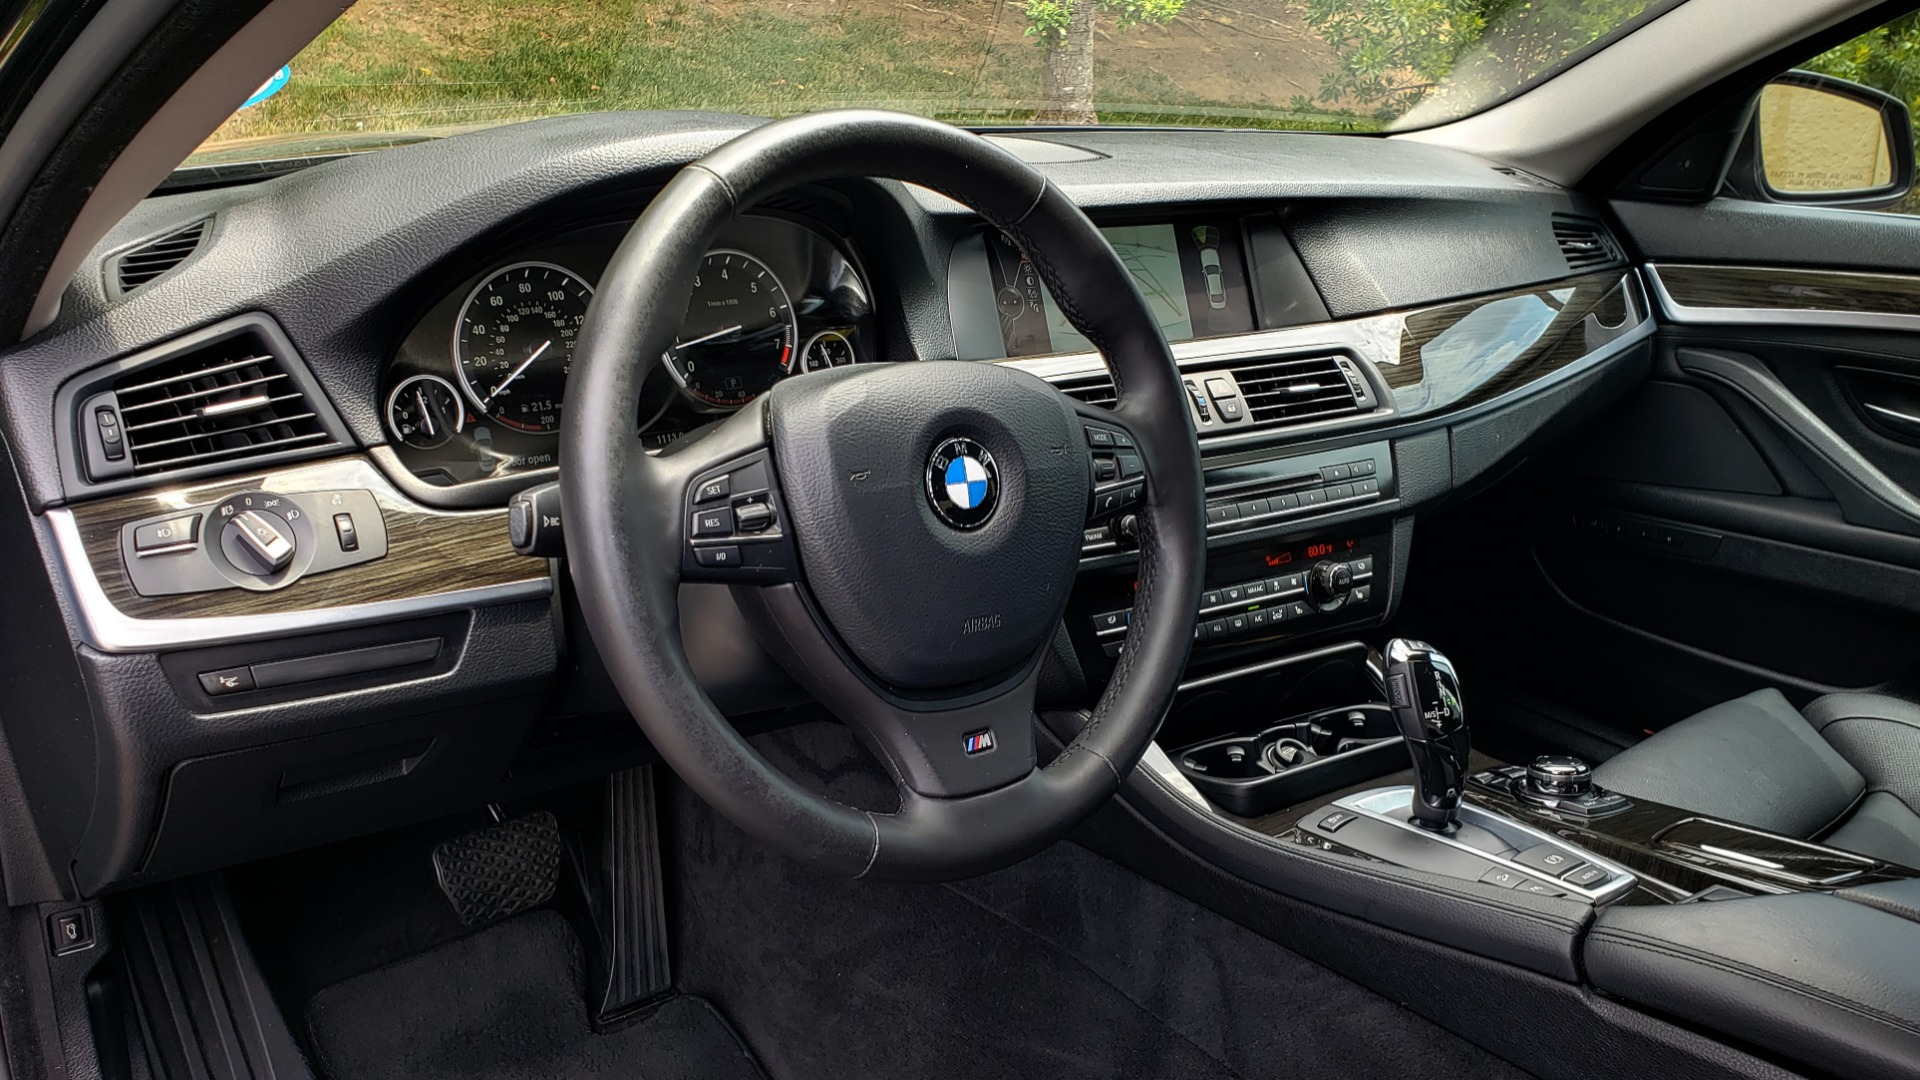 Used 2013 BMW 5 SERIES 550I XDRIVE LUX PKG / EXEC / COLD WTHR / NAV / SUNROOF / REARVIEW for sale Sold at Formula Imports in Charlotte NC 28227 30